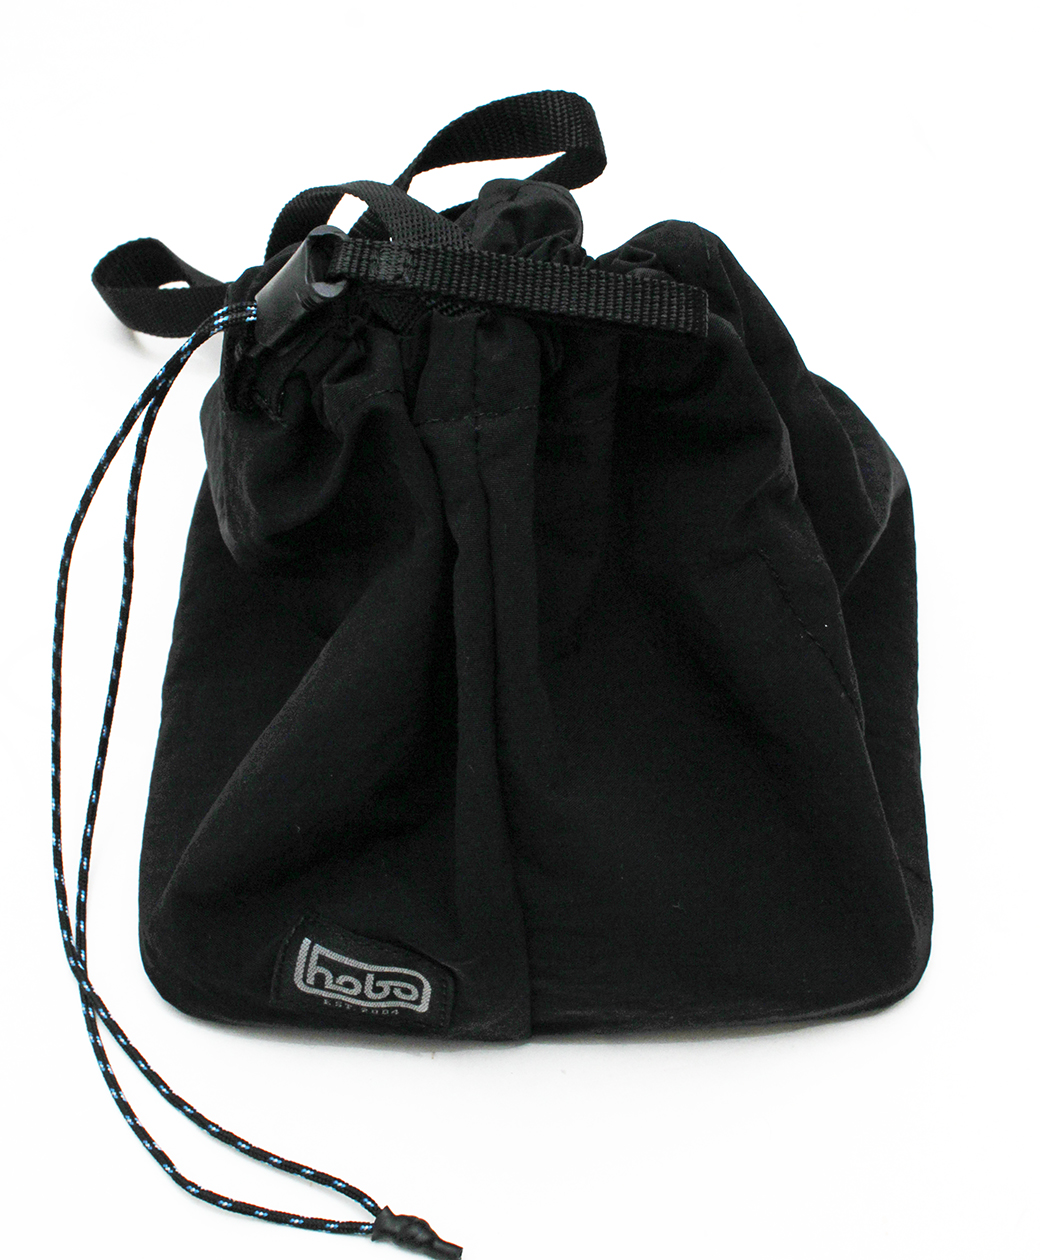 hobo NYLON TUSSAH DRAWSTRING SHOULDER BAG(BLACK)